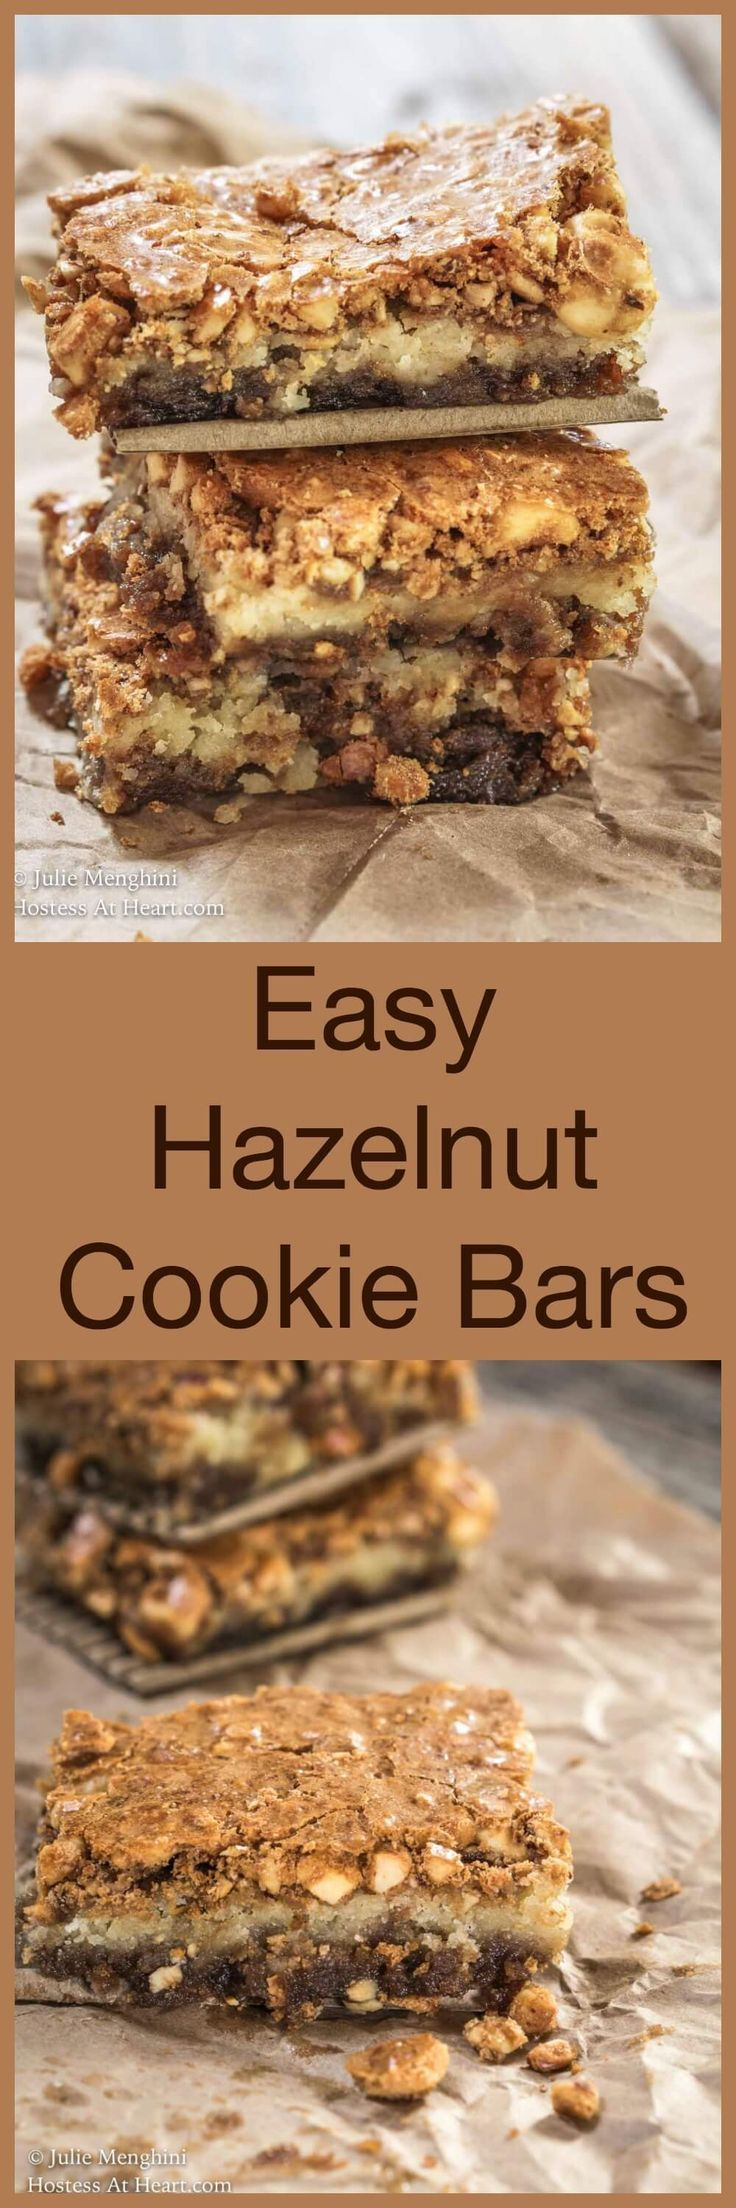 This ooey gooey Hazelnut Cookie Bar recipe is quick, easy, delicious and best of all semi-homemade. It's perfect for a crowd and easy to share. | HostessAtHeart.com